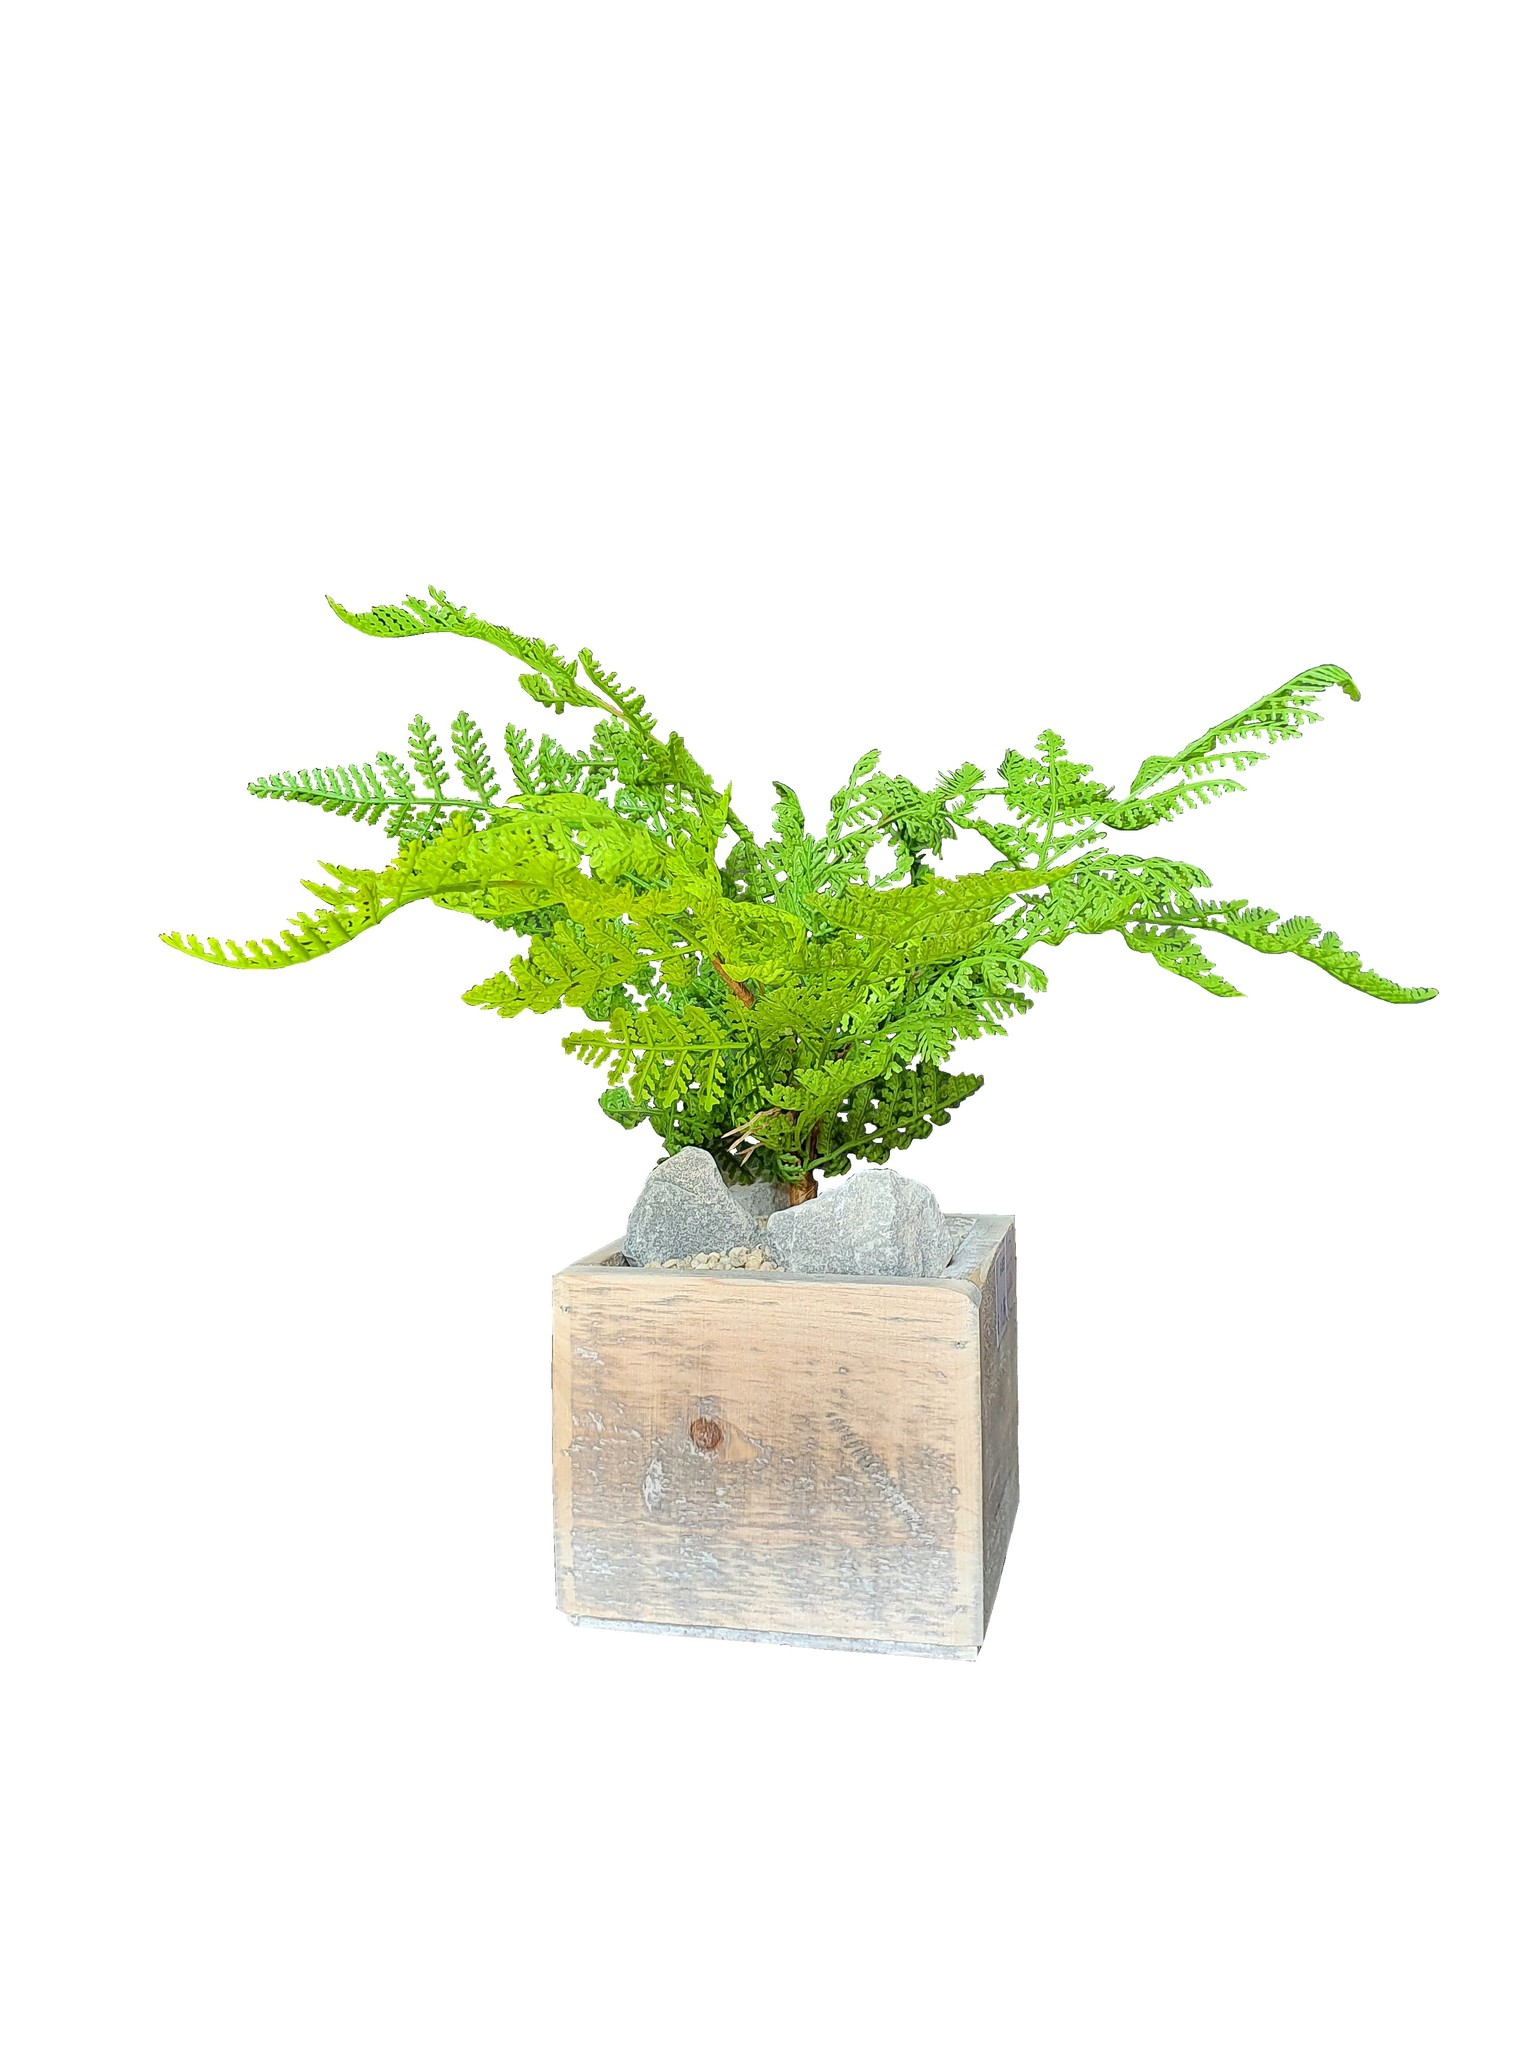 silk arr	old dutch	fern forest J13-1